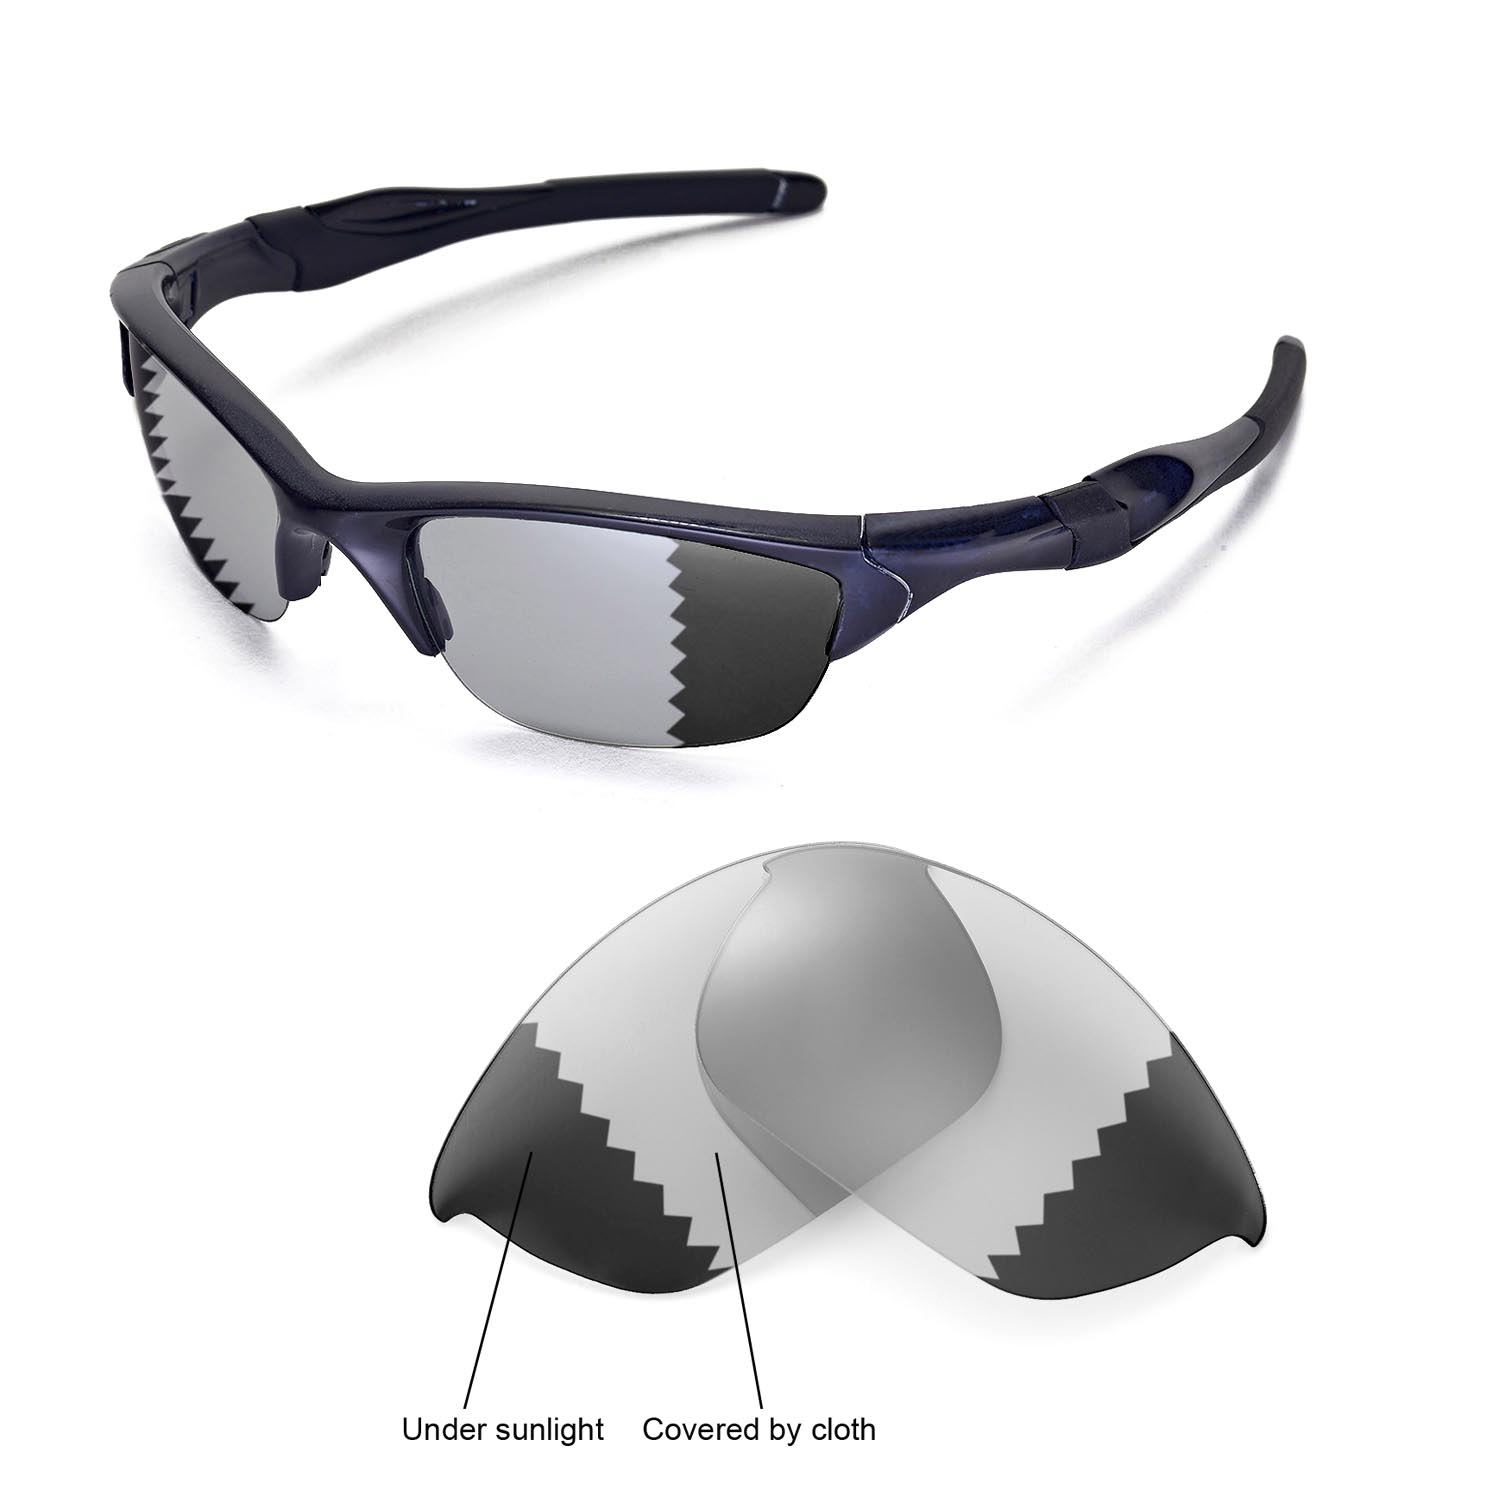 c32a867488f92 Details about New Walleva Polarized Transition Photochromic Lenses For Oakley  Half Jacket 2.0